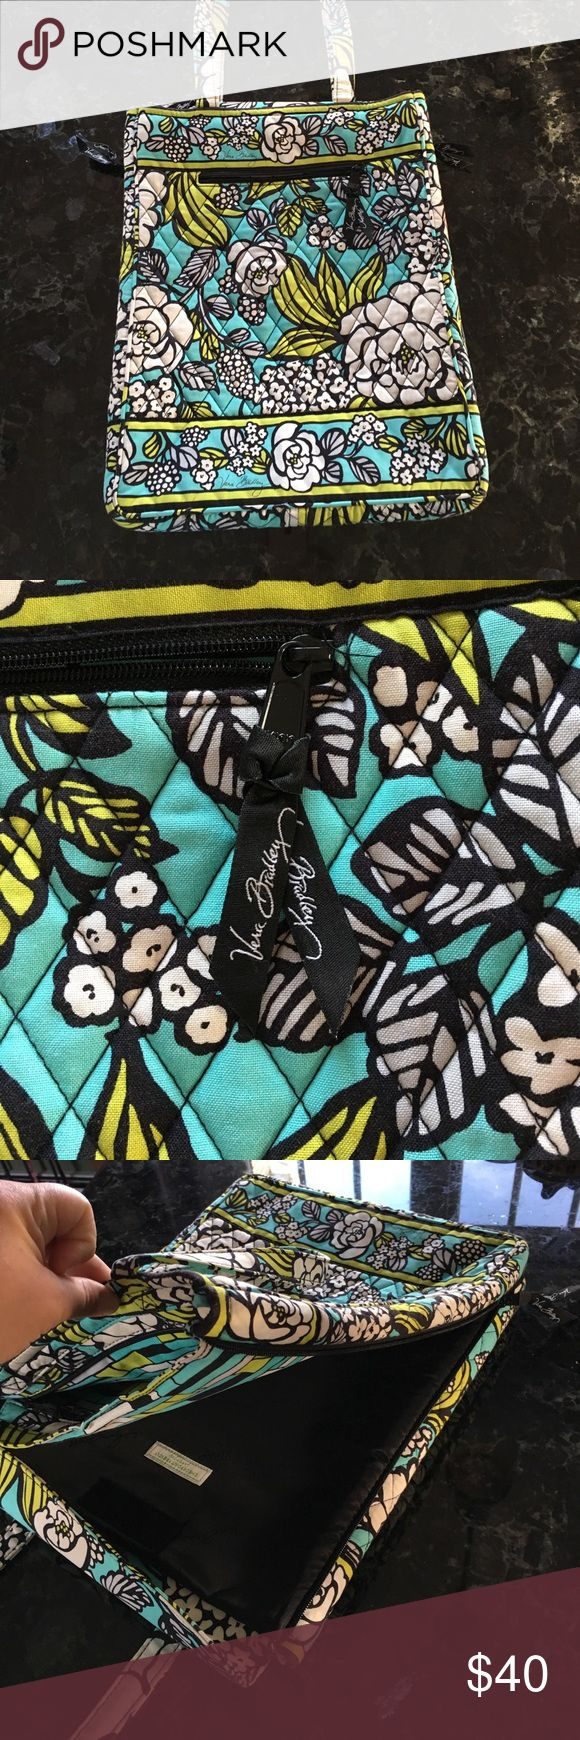 Vera Bradley laptop bag Vera Bradley laptop bag great condition! Colors r turquoise black light lime green white authentic! Make me an offer! Vera Bradley Bags Laptop Bags